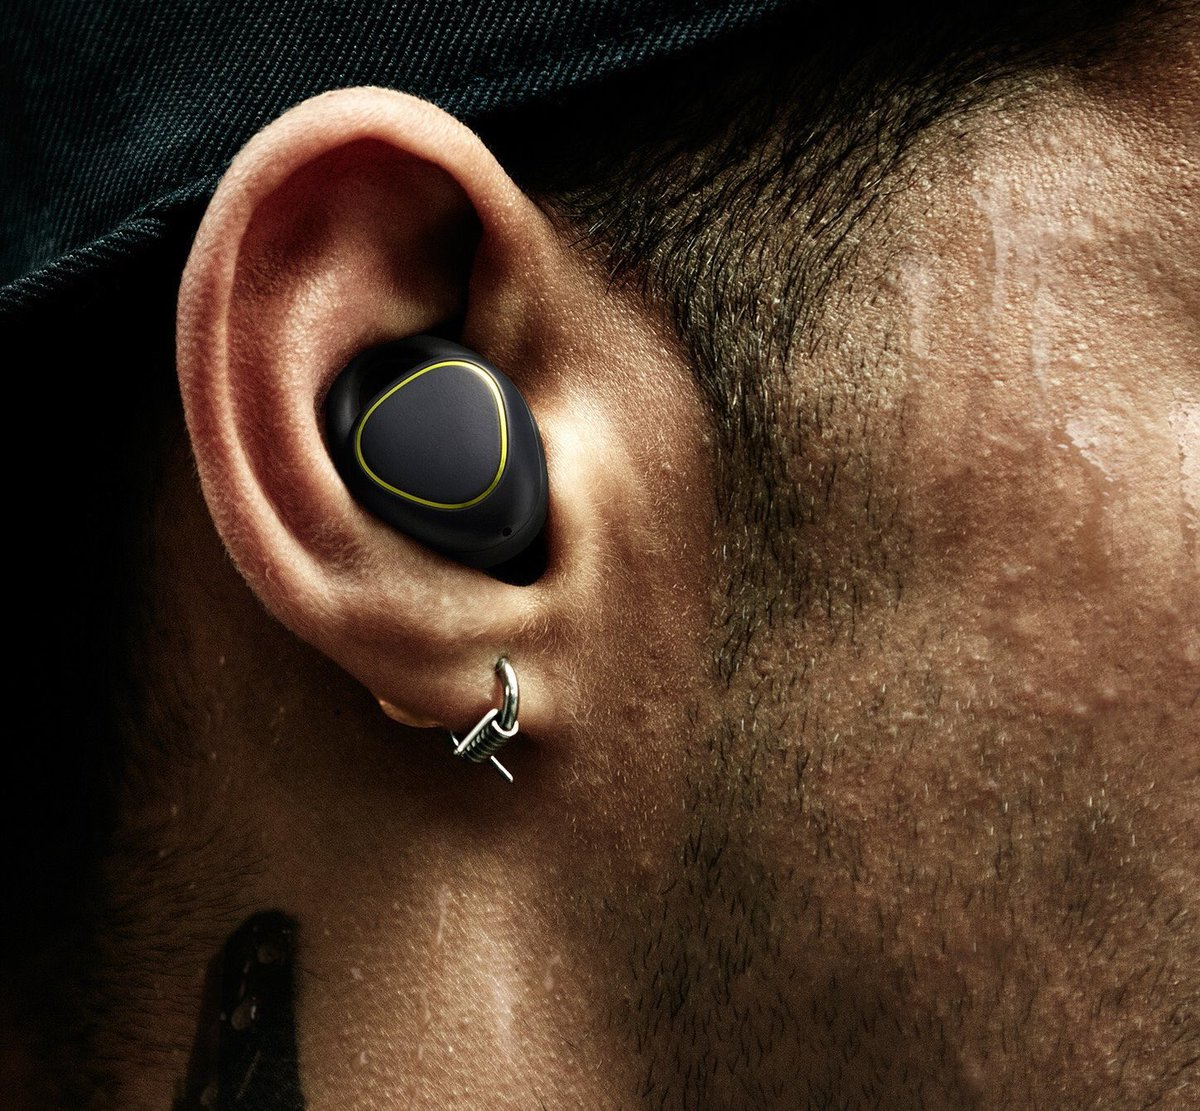 Gear IconX Launched, So Is it The Year of the Hearable?